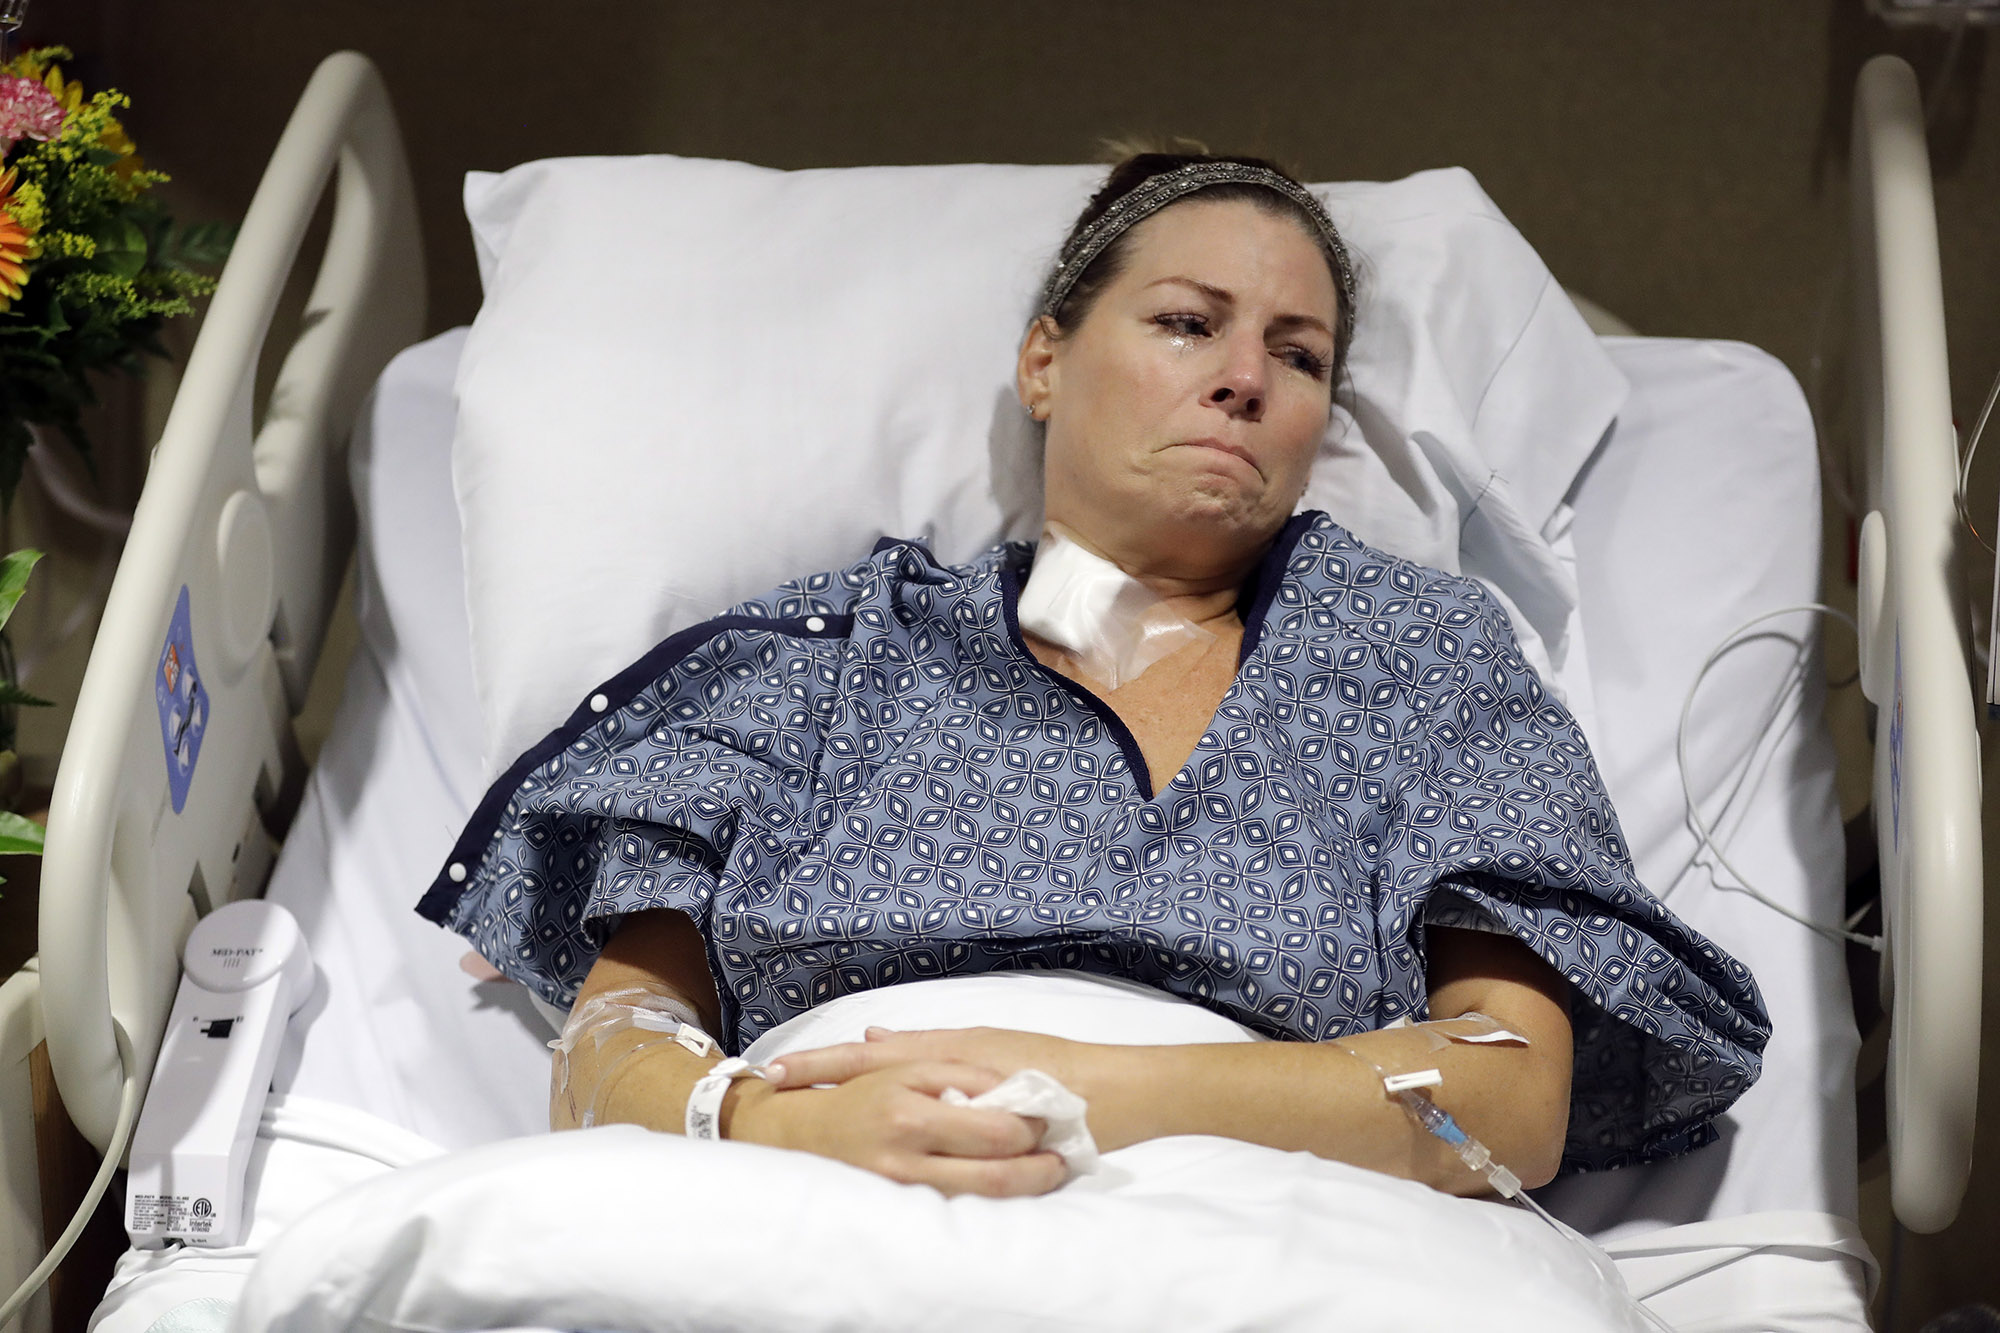 Nurse Shot In Vegas Attack Treated Her Own Bullet Wound